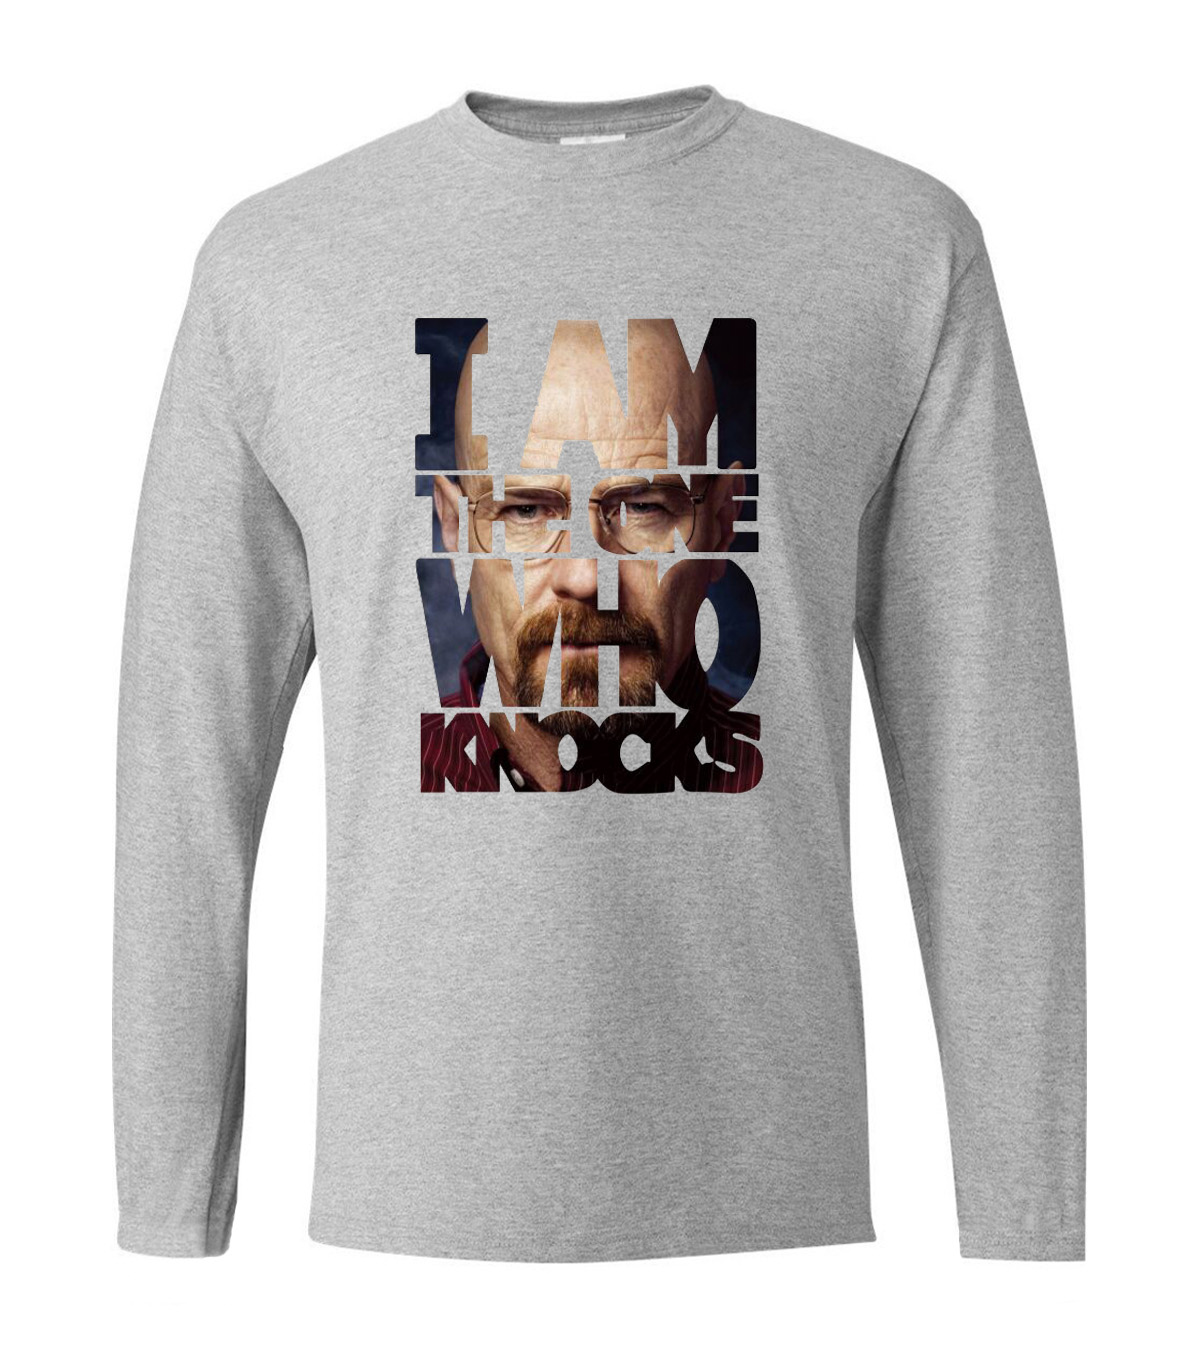 Fashion Breaking Bad Heisenberg Camisetas Hombre men's long sleeve T-shirts 2019 new spring cotton high quality fitness t shirt